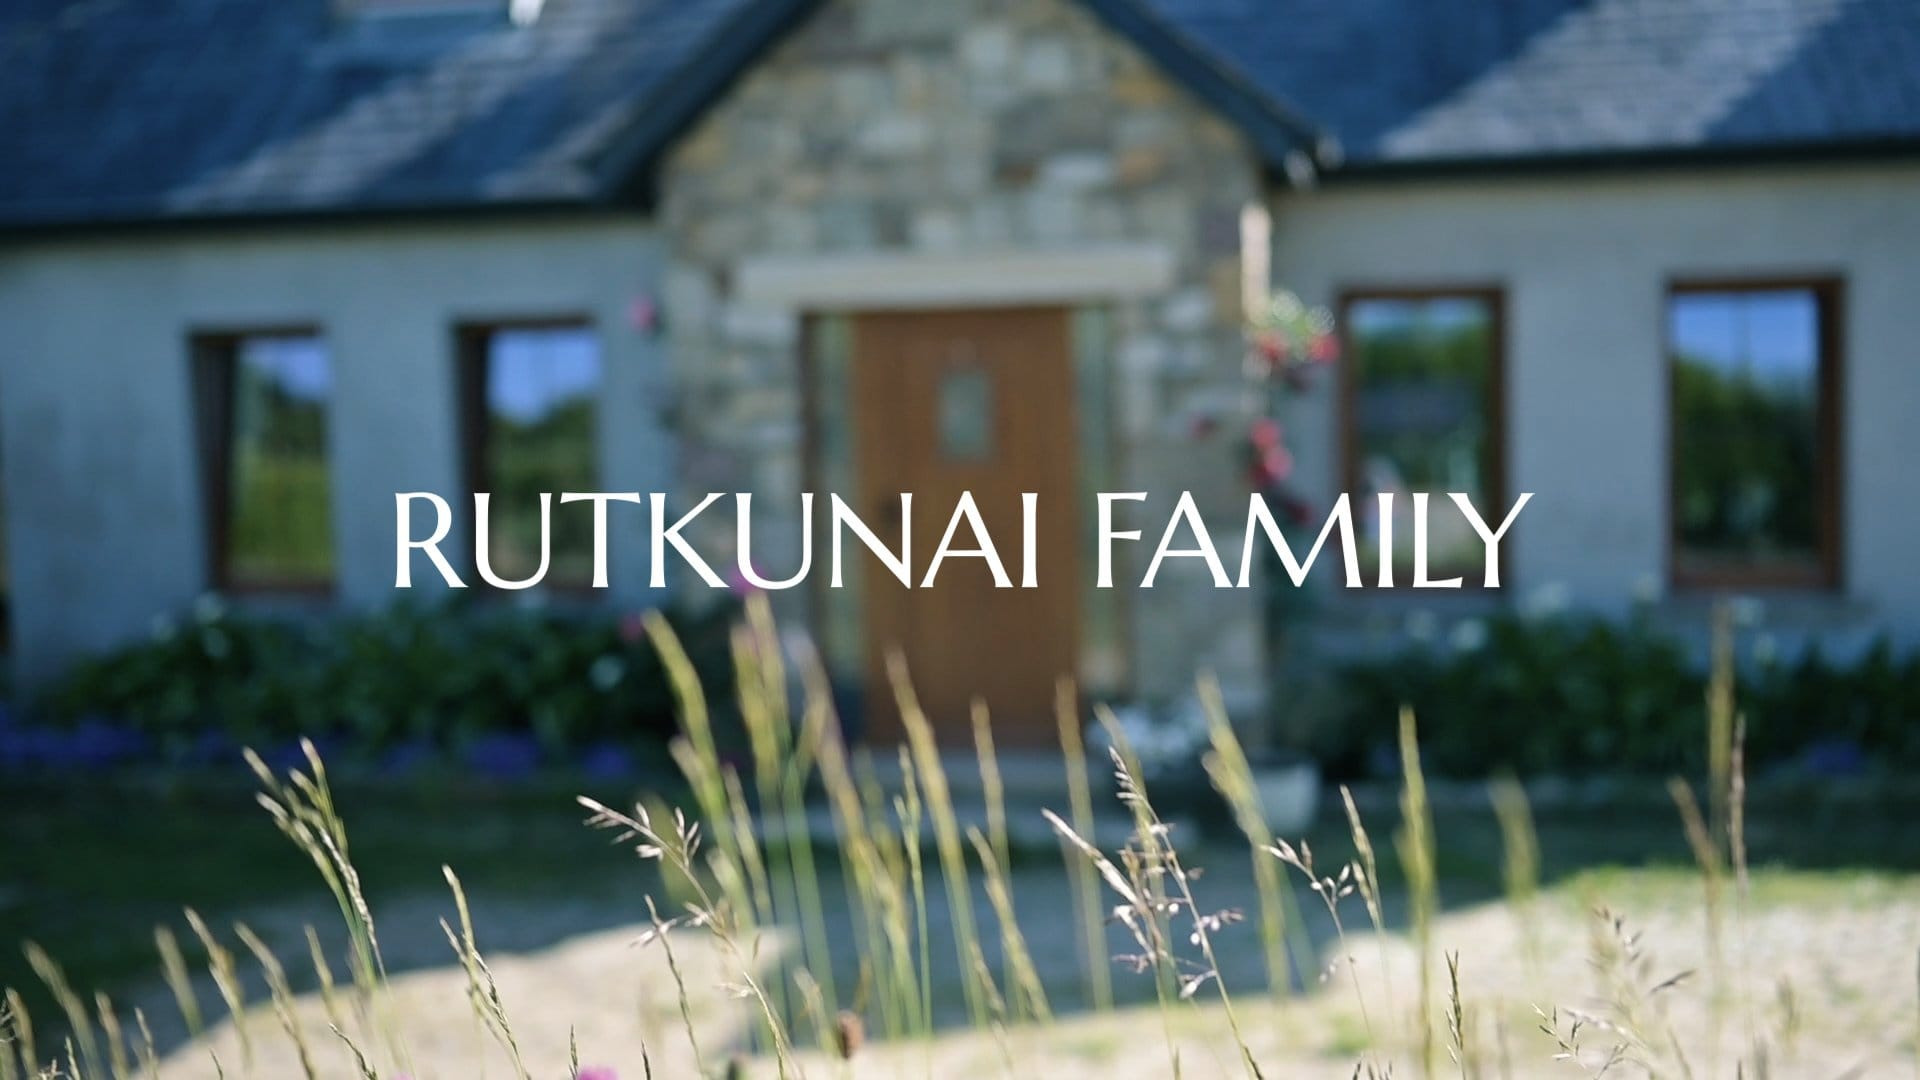 family house from videography session with ratkunai family